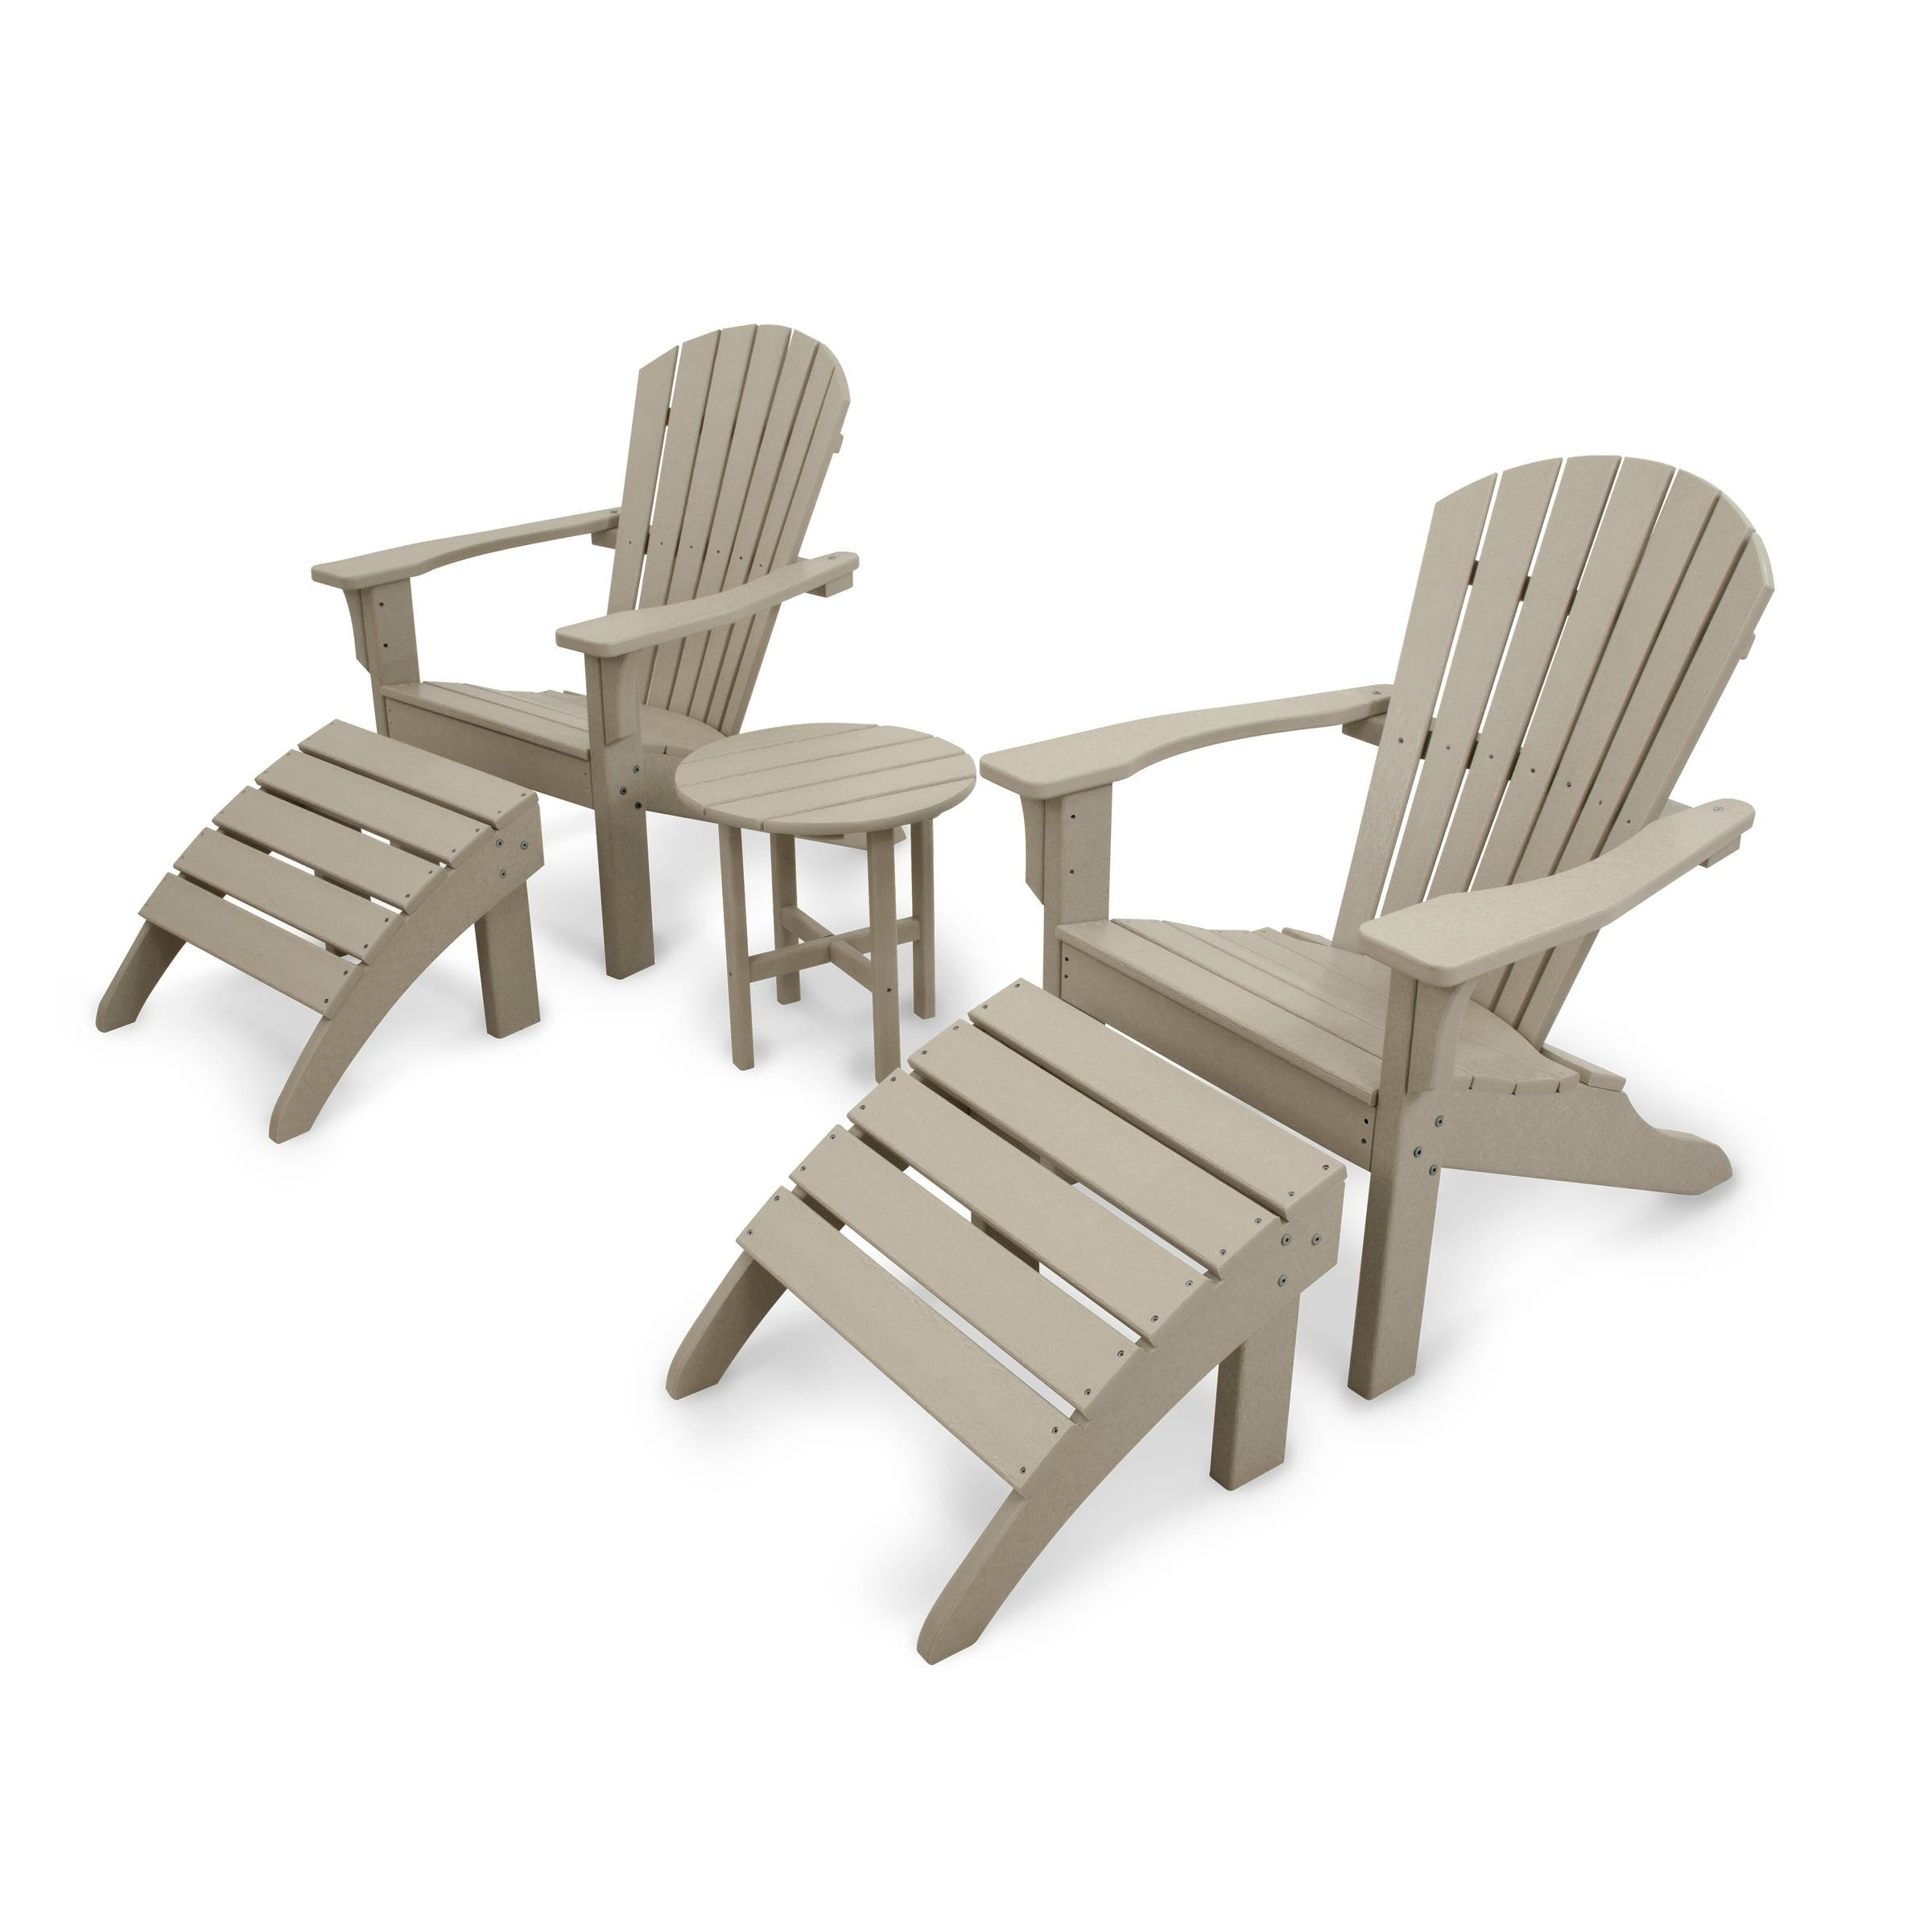 Buy Outdoor Sofas Chairs Amp Sectionals Online At Overstock